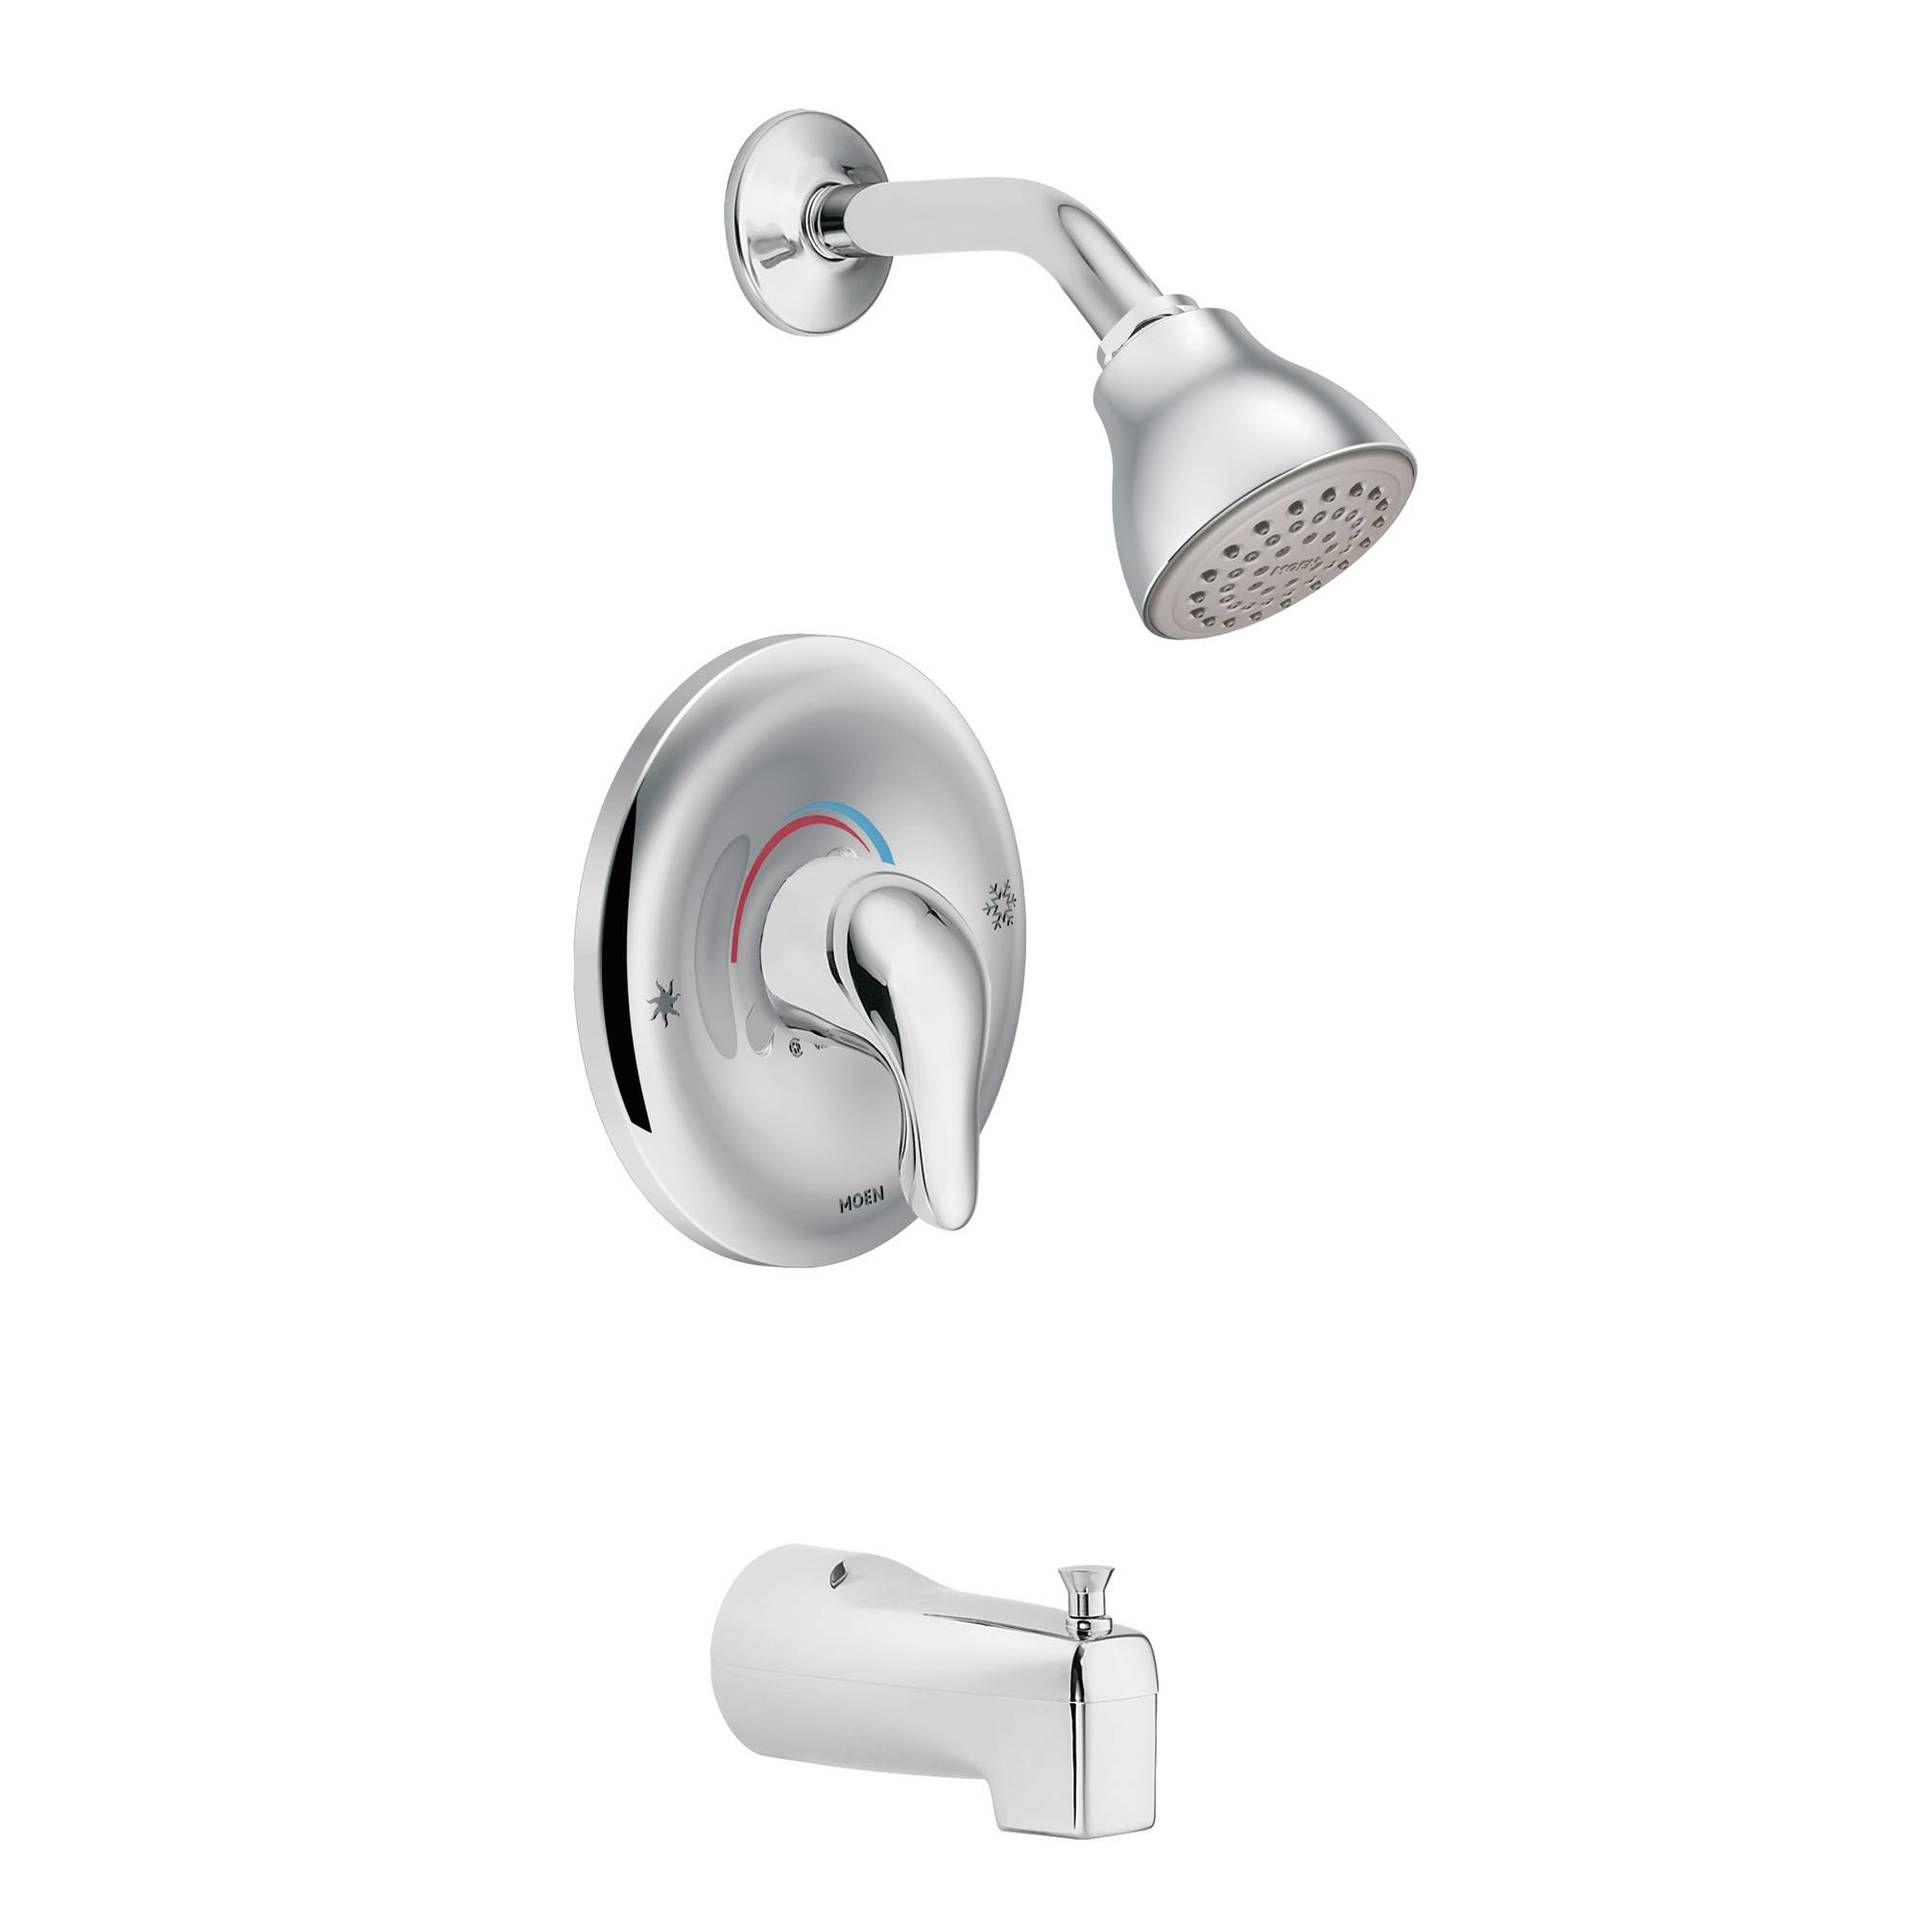 Moen Chateau Posi Temp Tub And Shower Shower Faucet Sets